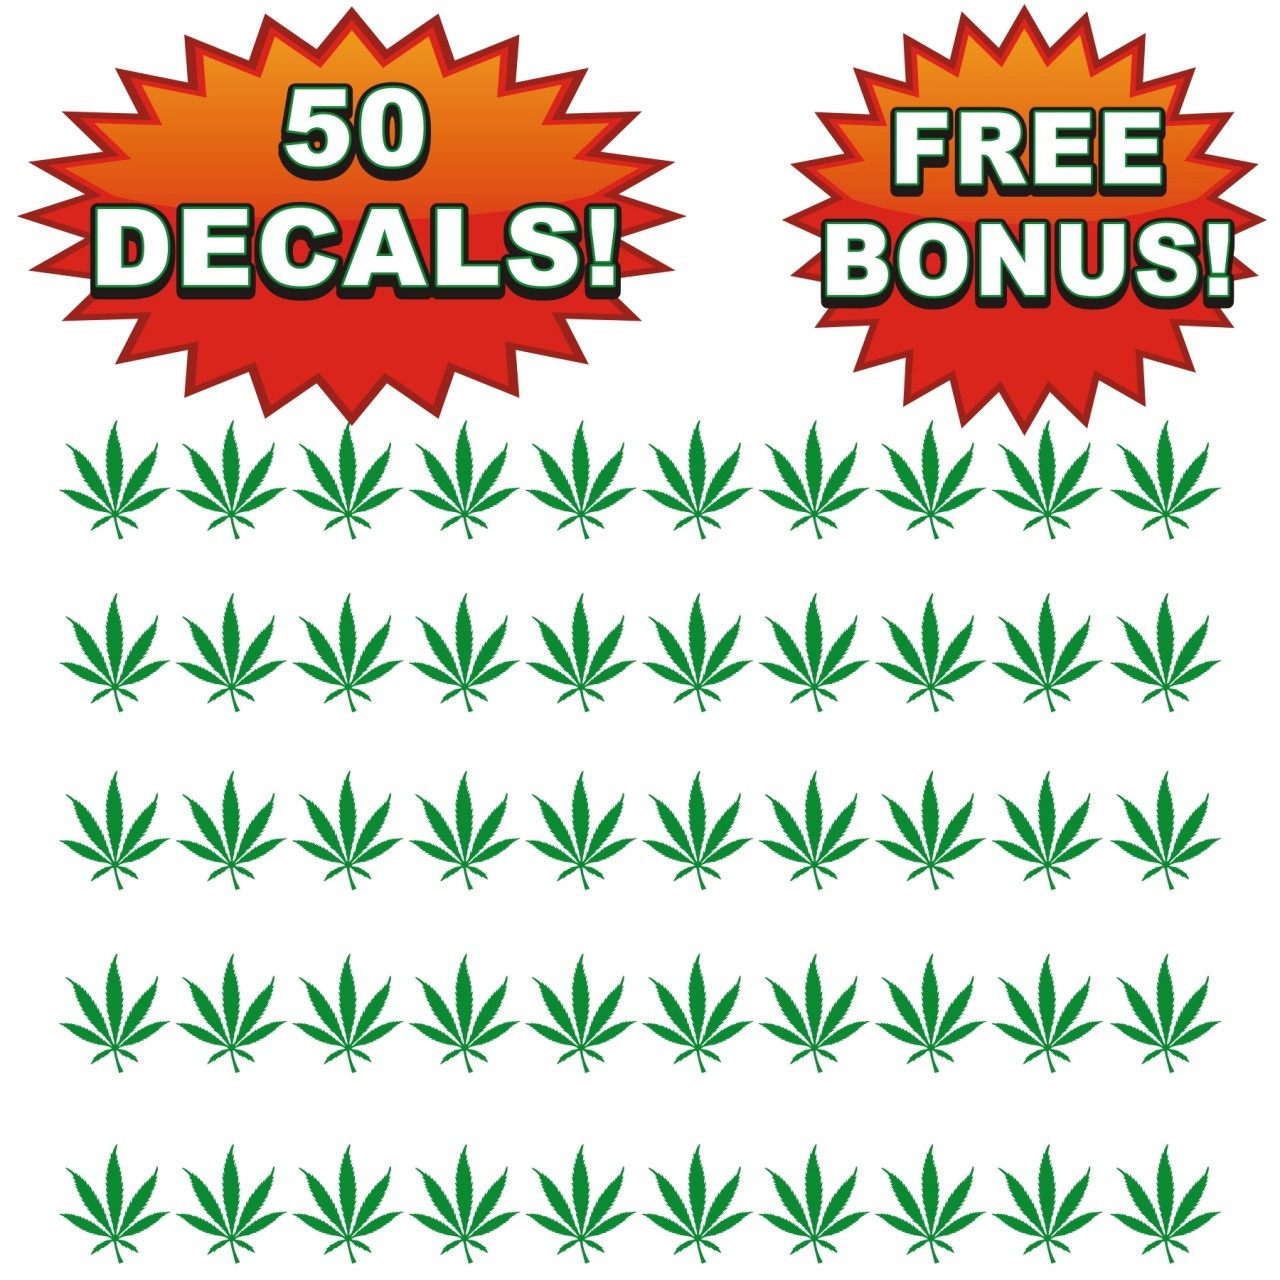 Bulk wholesale lot of 50 pot leaf decals stickers 420 weed chronic